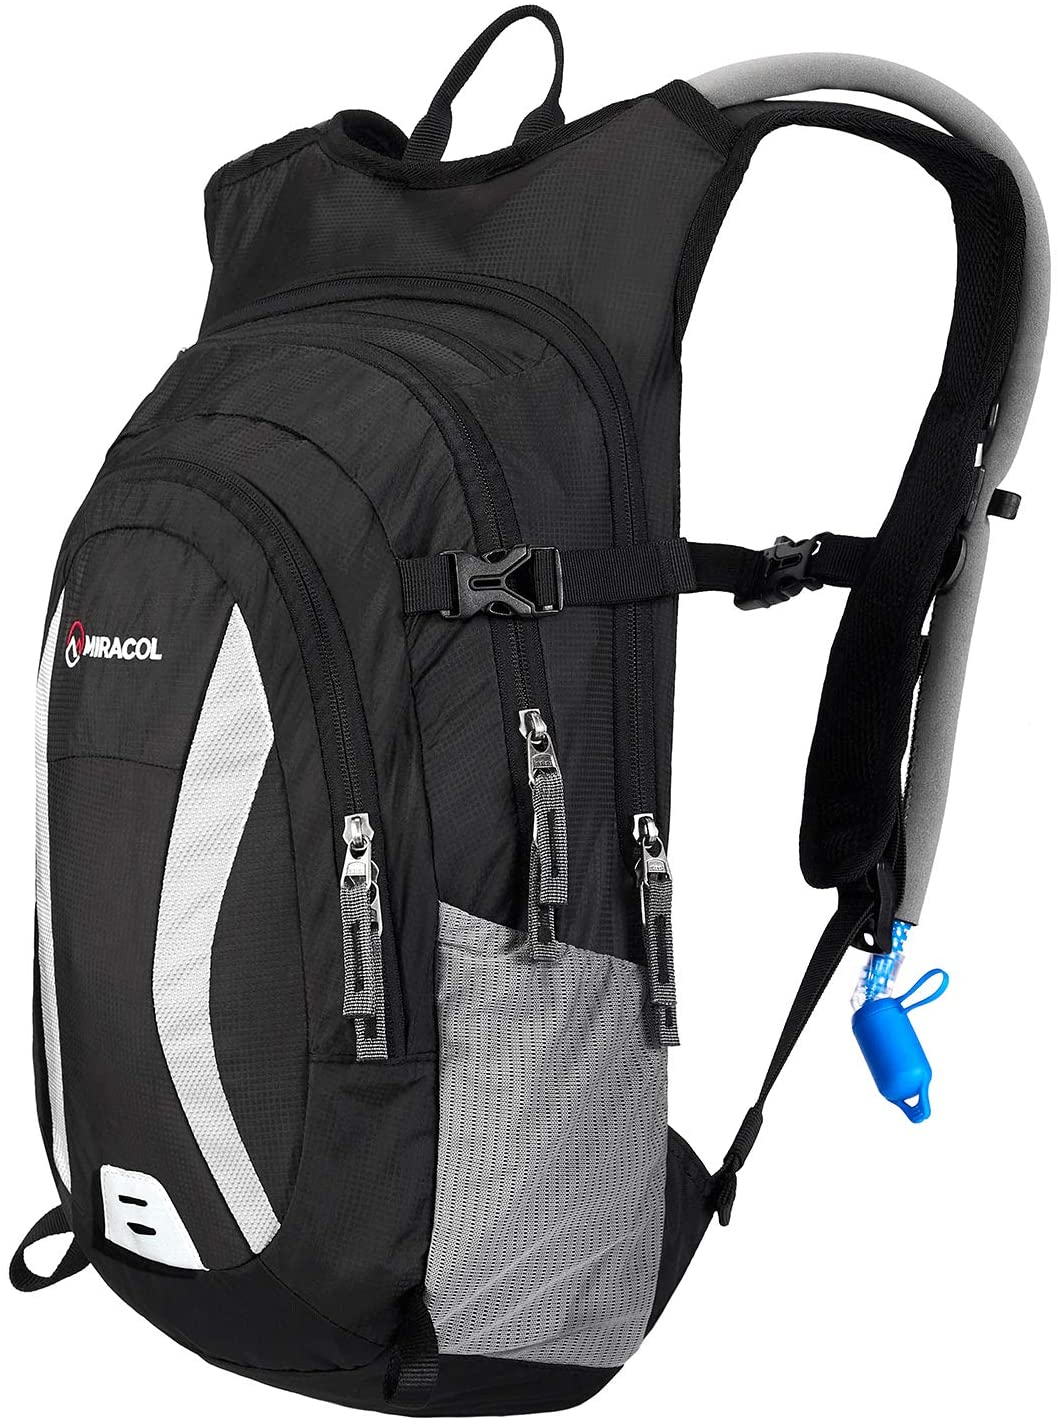 MIRACOL Hydration Backpack Packs with 2L Auto Shut-Off Water Bladder, Insulated Hydration Backpacks for Hiking, Cycling, Running, Climbing, Biking, Camping Gear